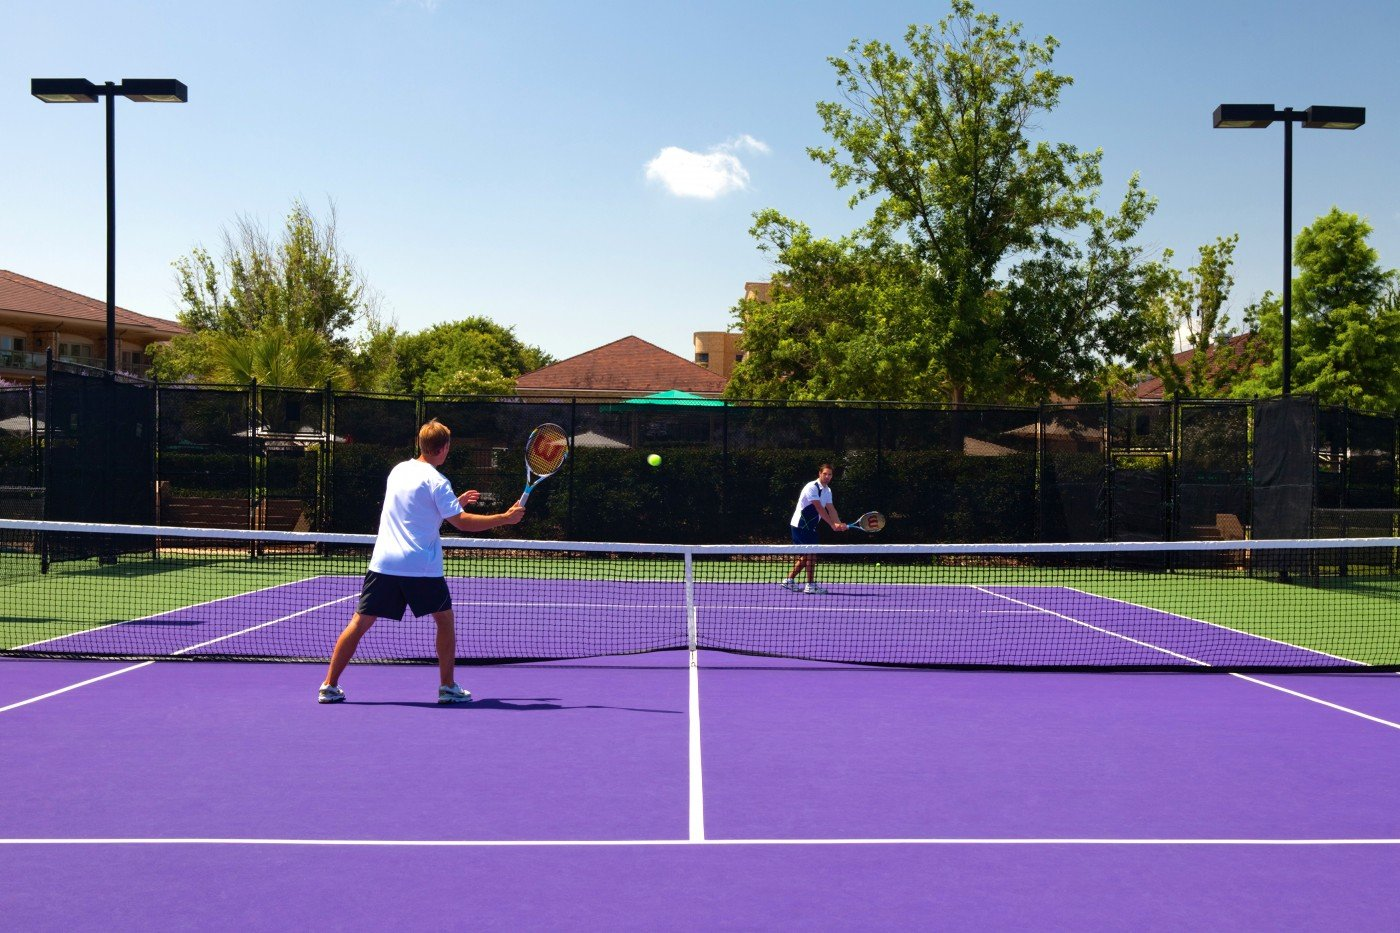 tennis-tourist-courtesy-dallas-four-seasons-tennis-courts-outdoor-players-on-court